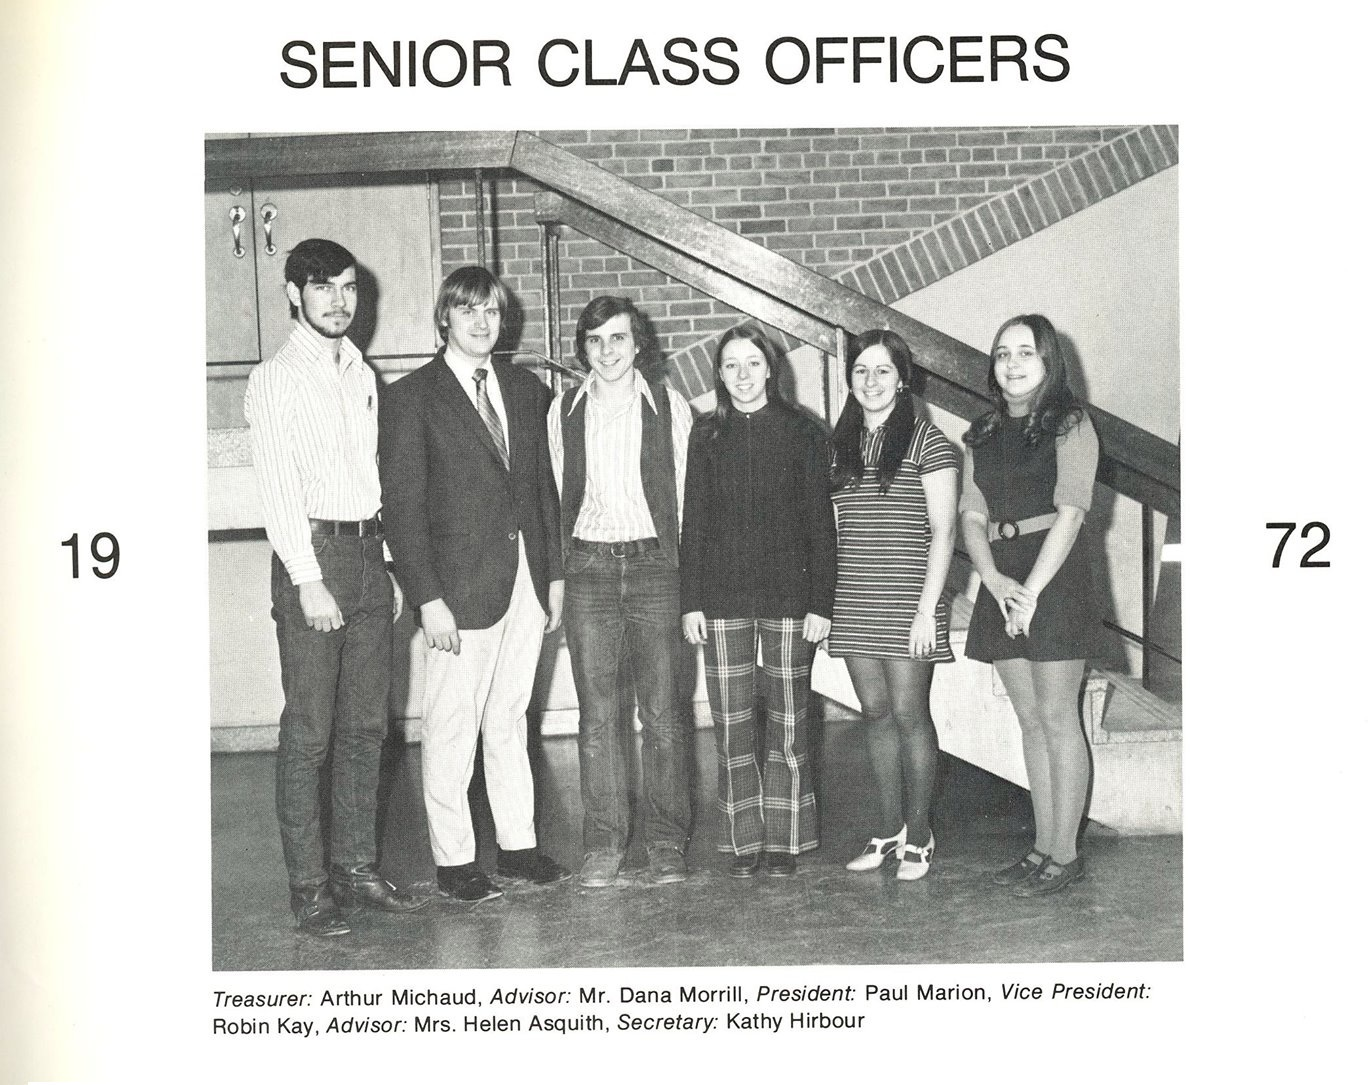 From the 1972 Yearbook of Dracut High School.